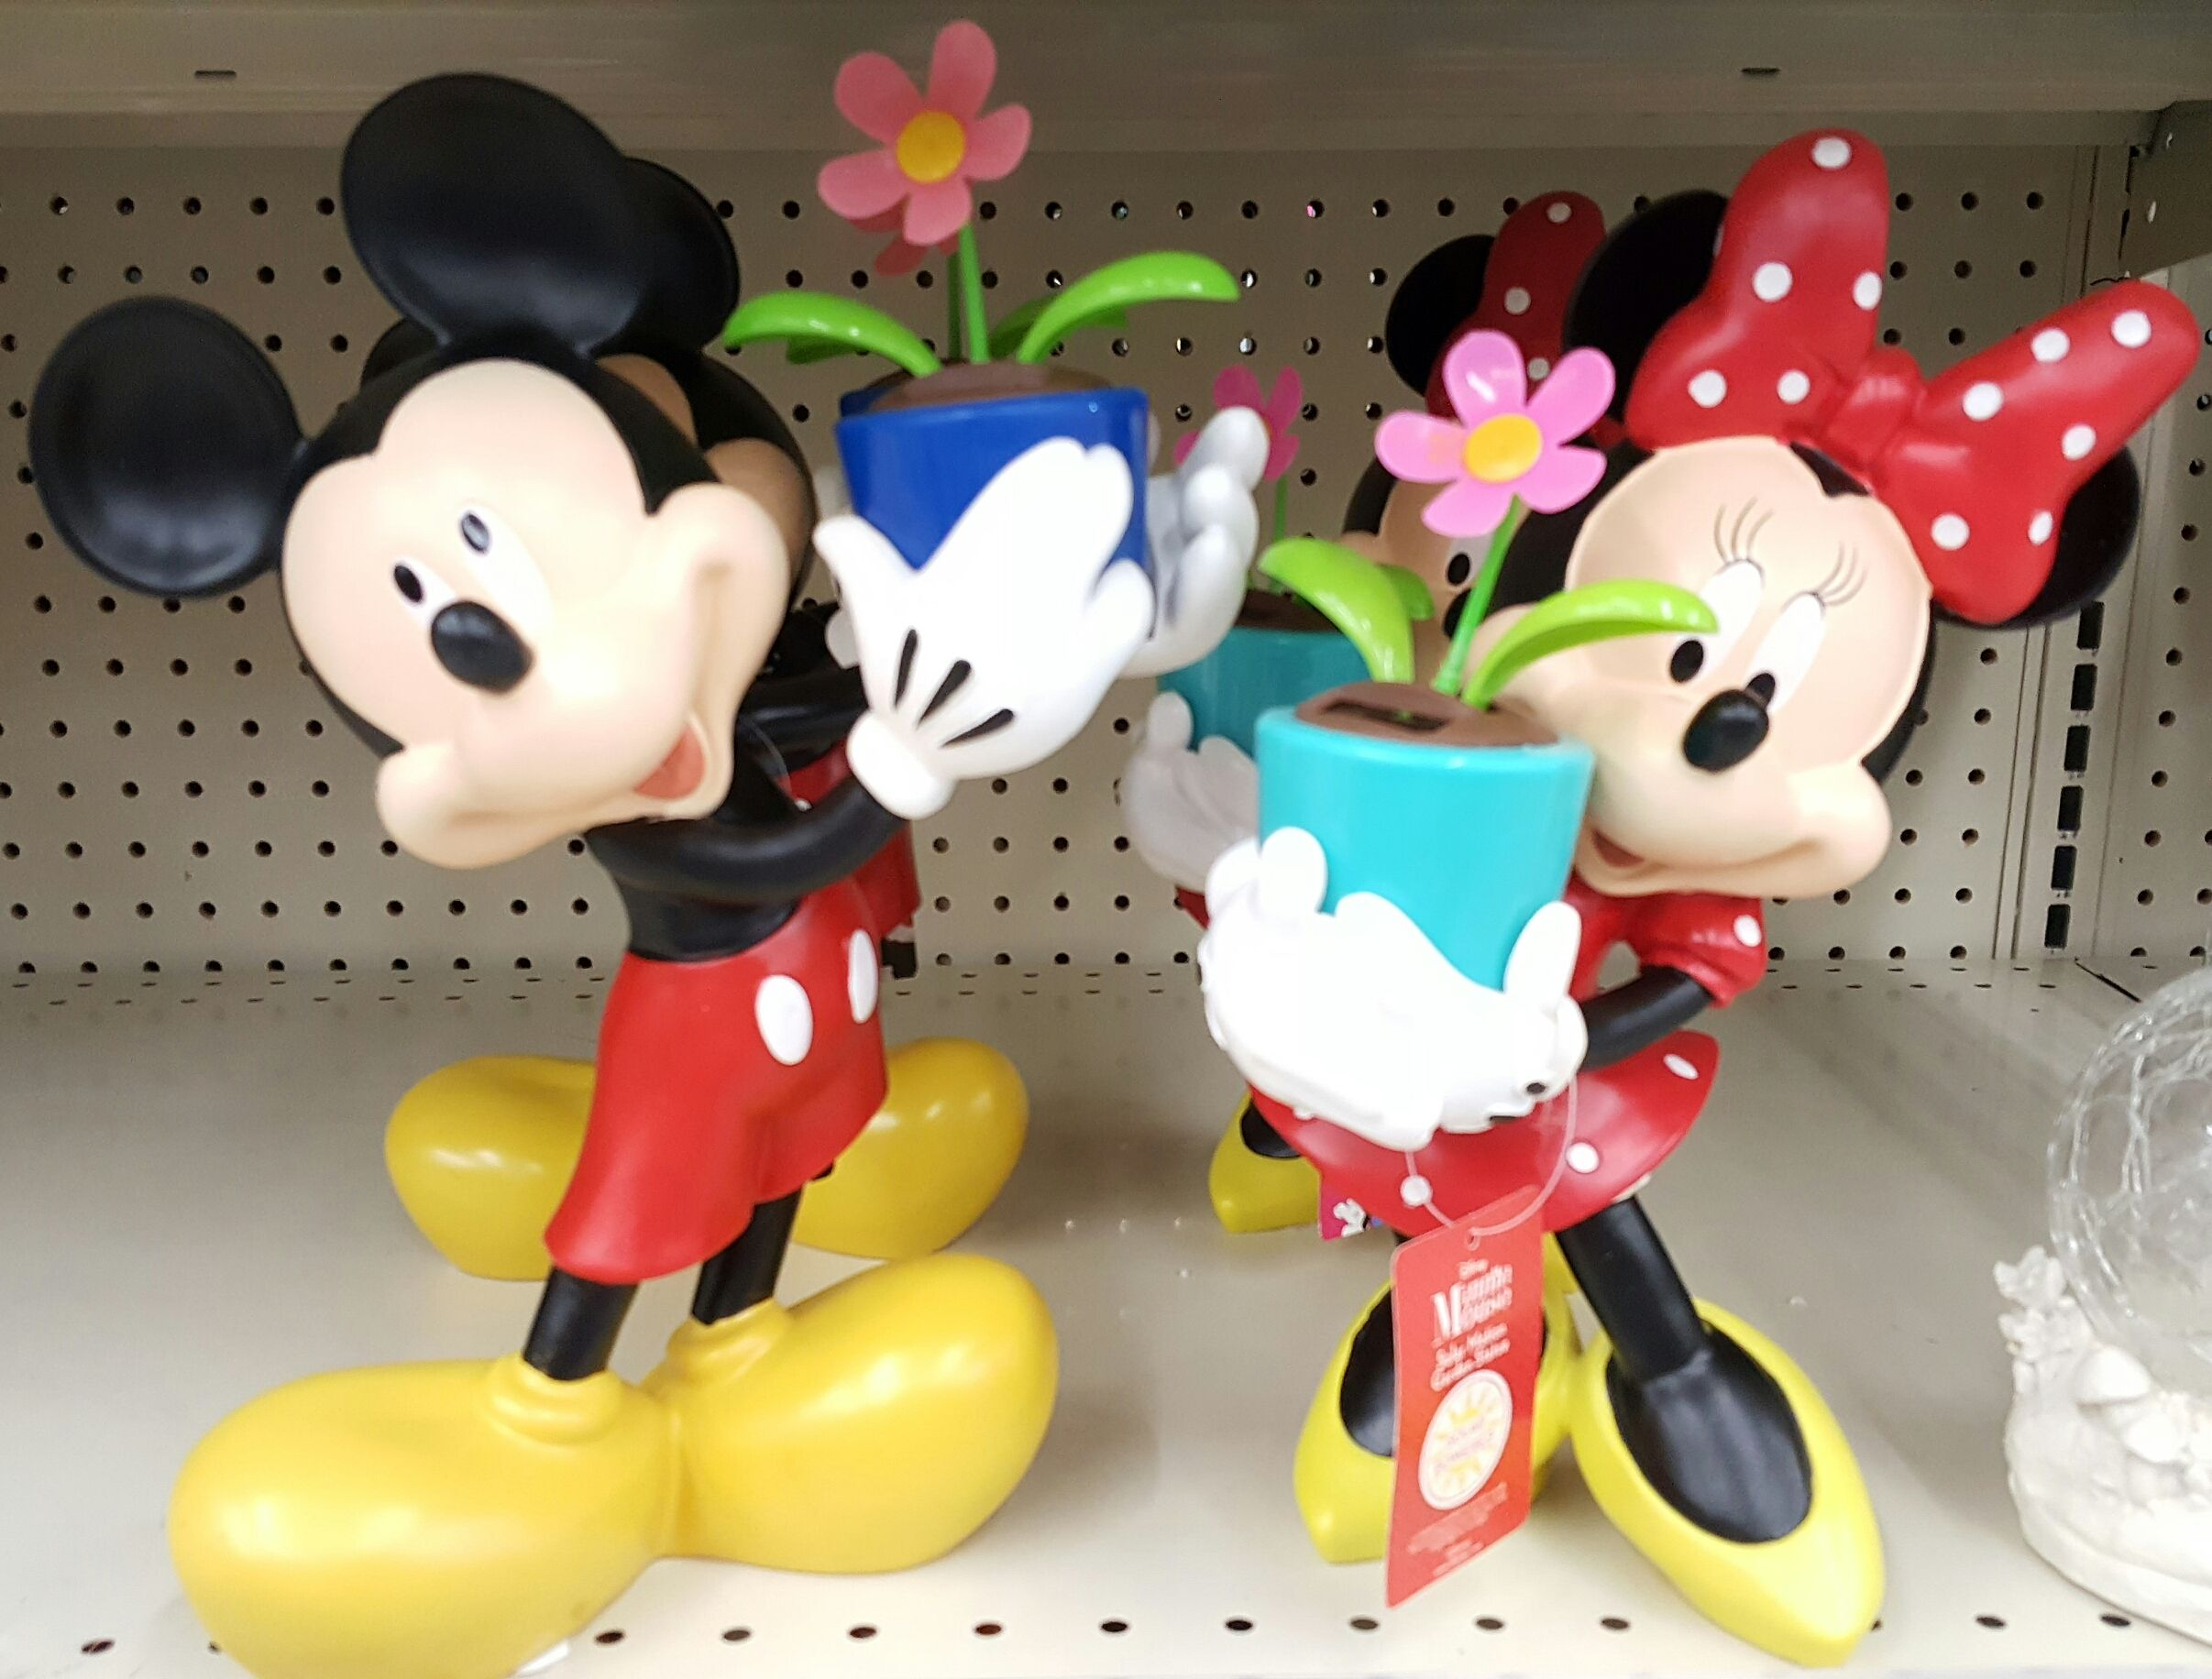 New Disney Garden Decor Spotted At Walgreens